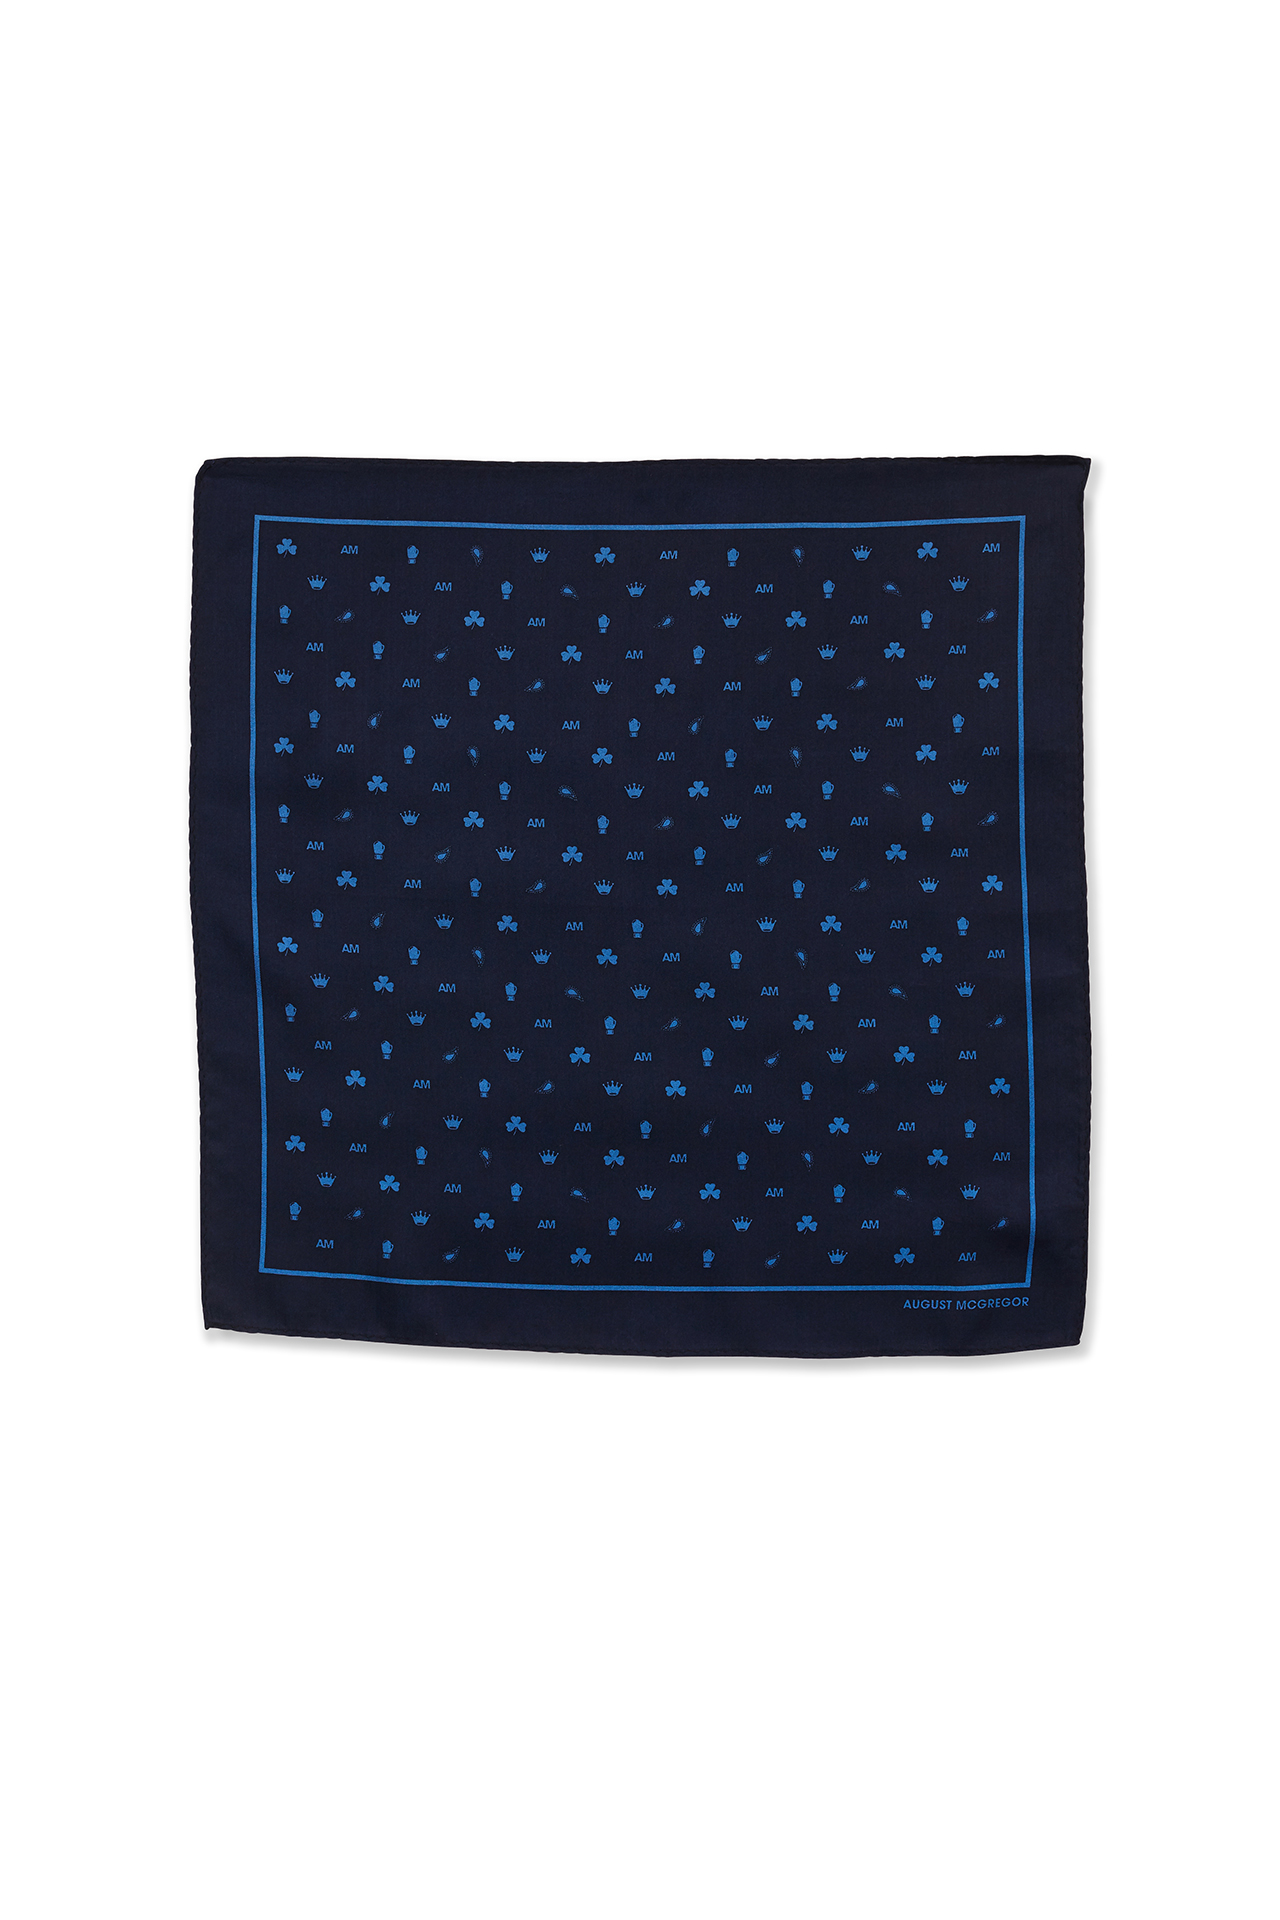 August McGregor Icon Navy Pocket Square